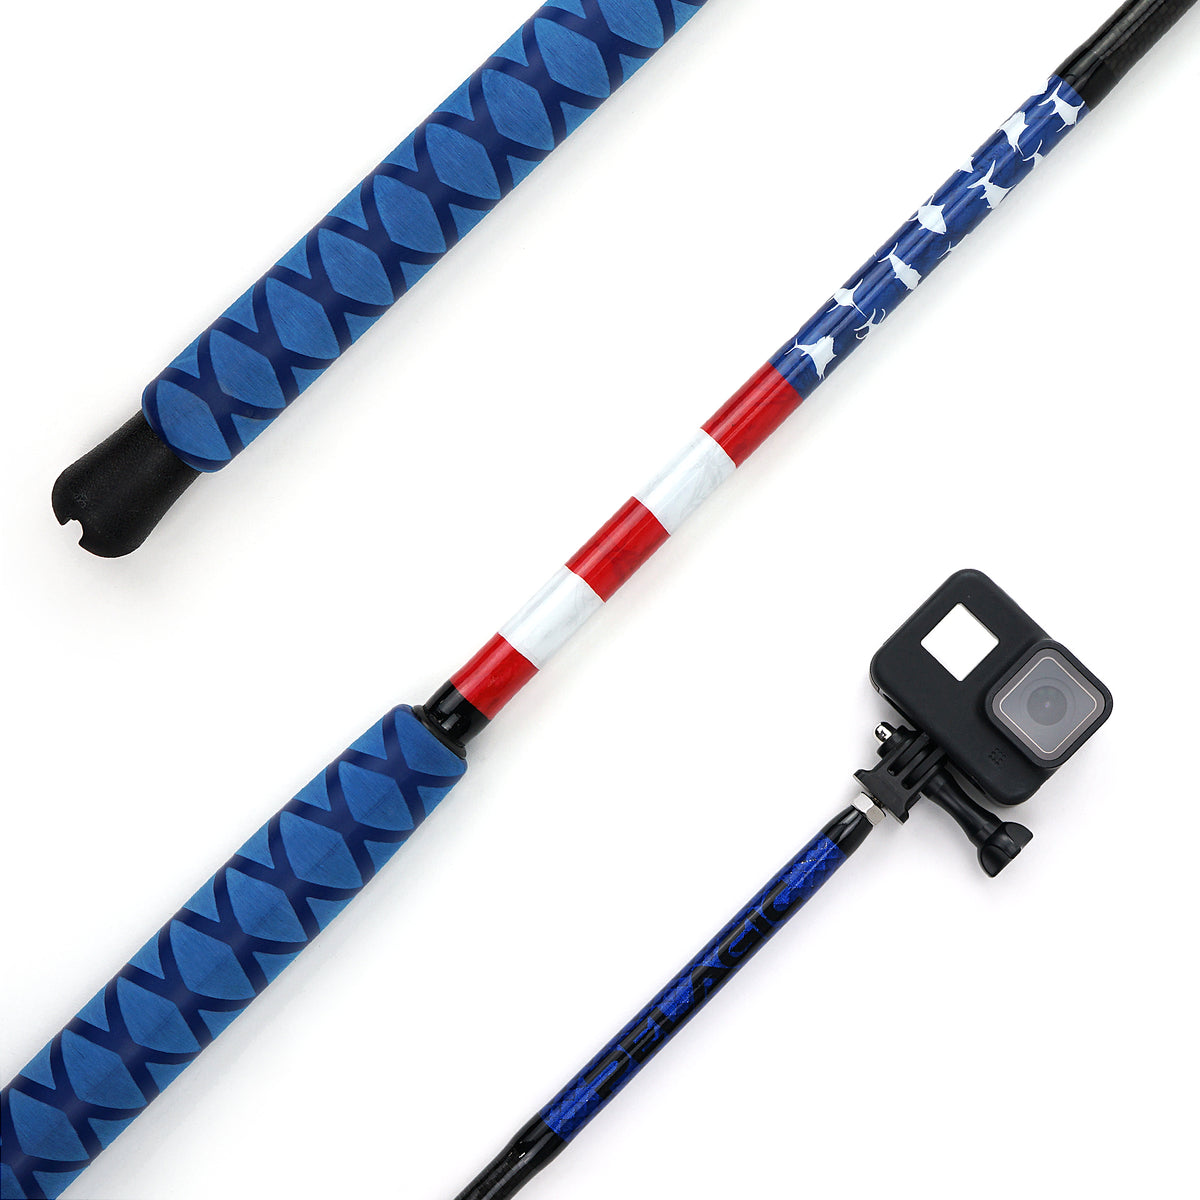 Custom 6-ft. GoPro Camera Stick Big Image - 1